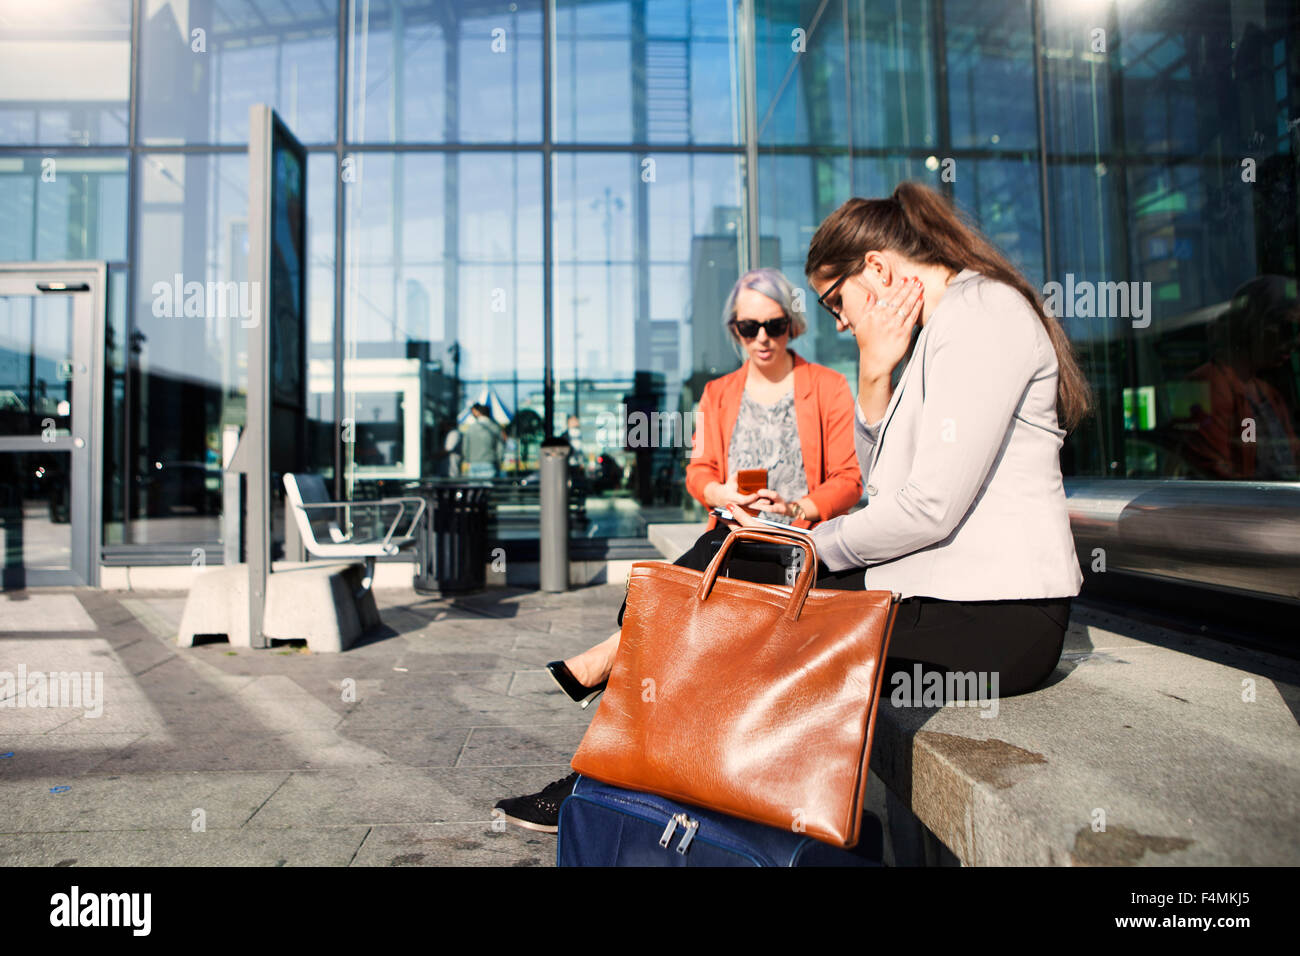 Businesswomen using technologies while waiting at railroad station - Stock Image